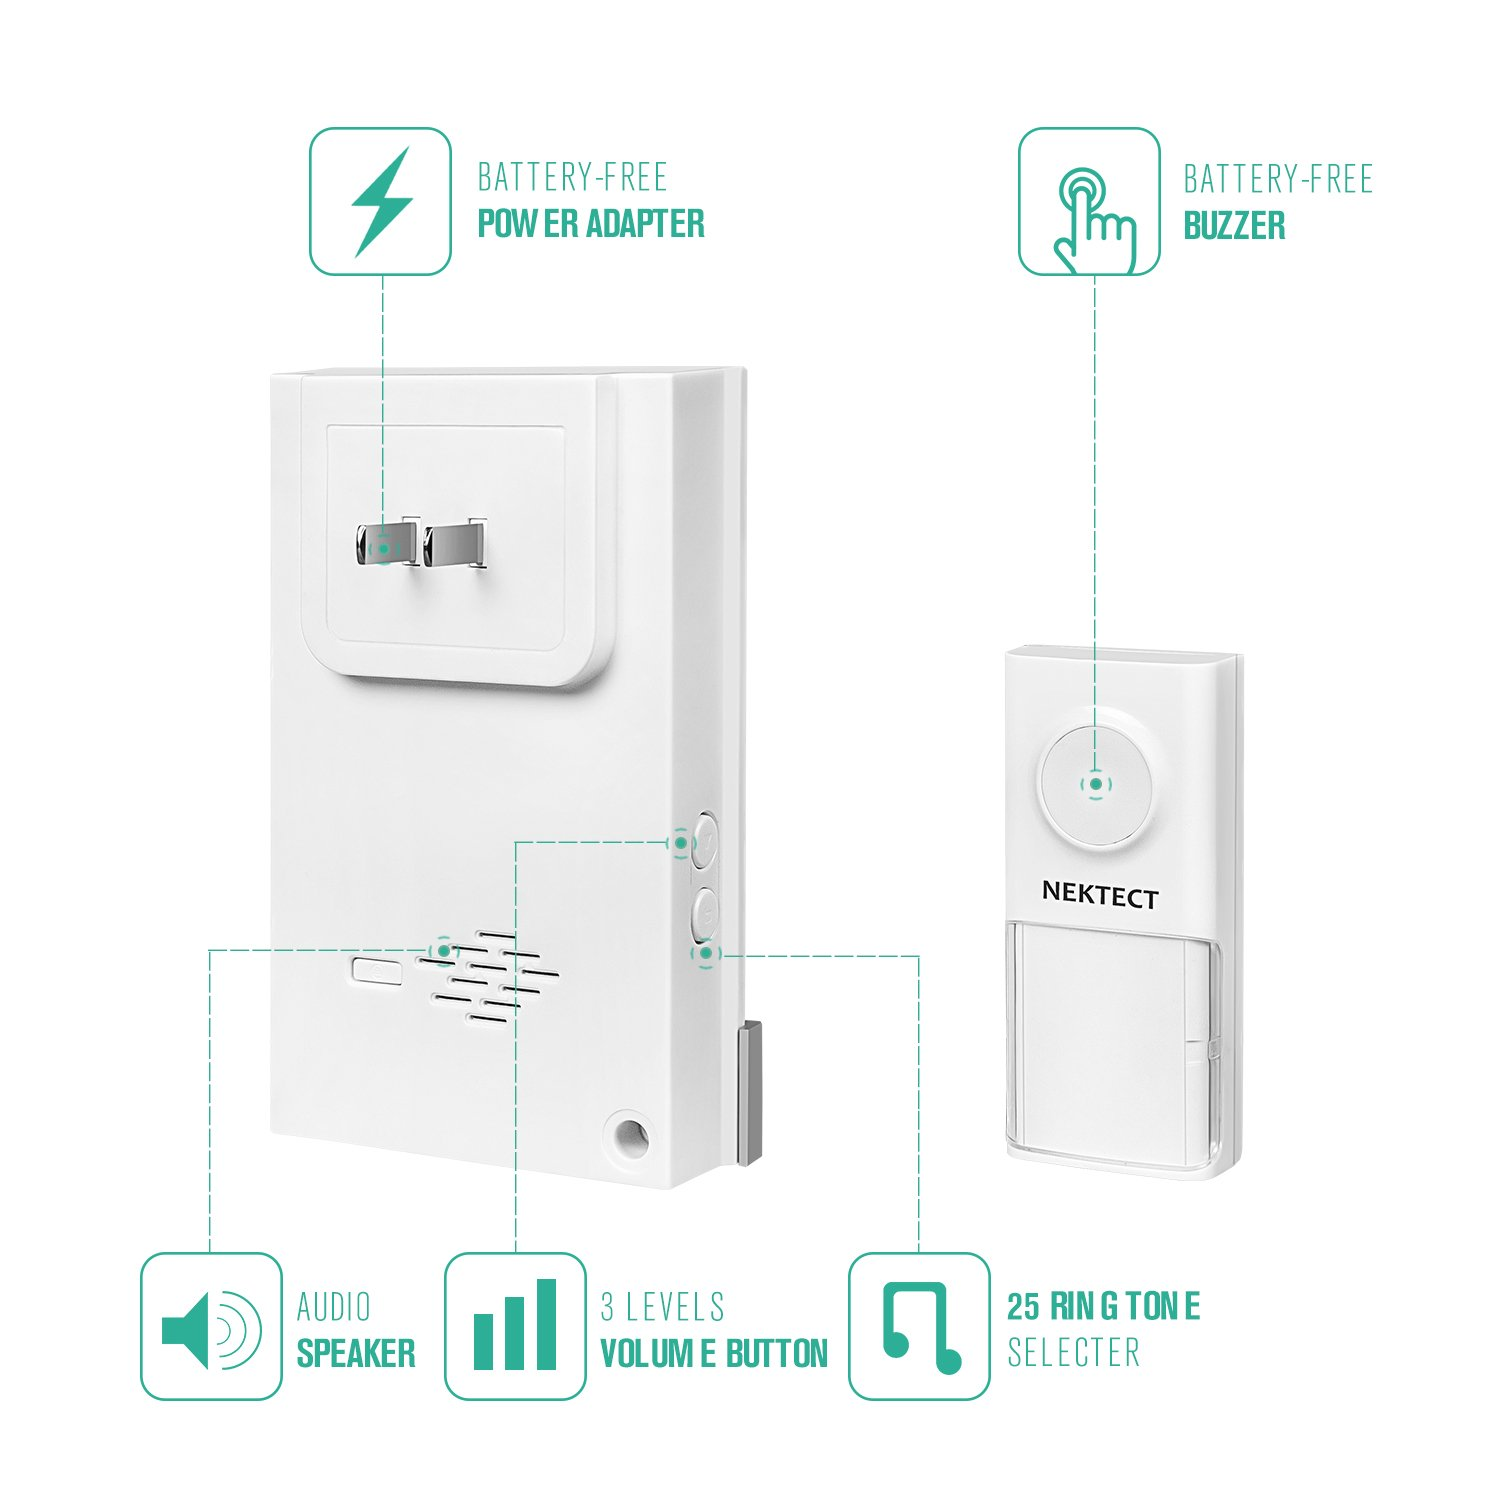 Wireless Doorbell, Nekteck Plug-in Doorbell Chime Battery-Free Kinetic Push Button Transmitter with Over 25 Musical Tones, 3 Volume Levels [150m Range / IP44 Water Proof] - [1 Button & 1 Plugin Chime] by Nekteck (Image #2)